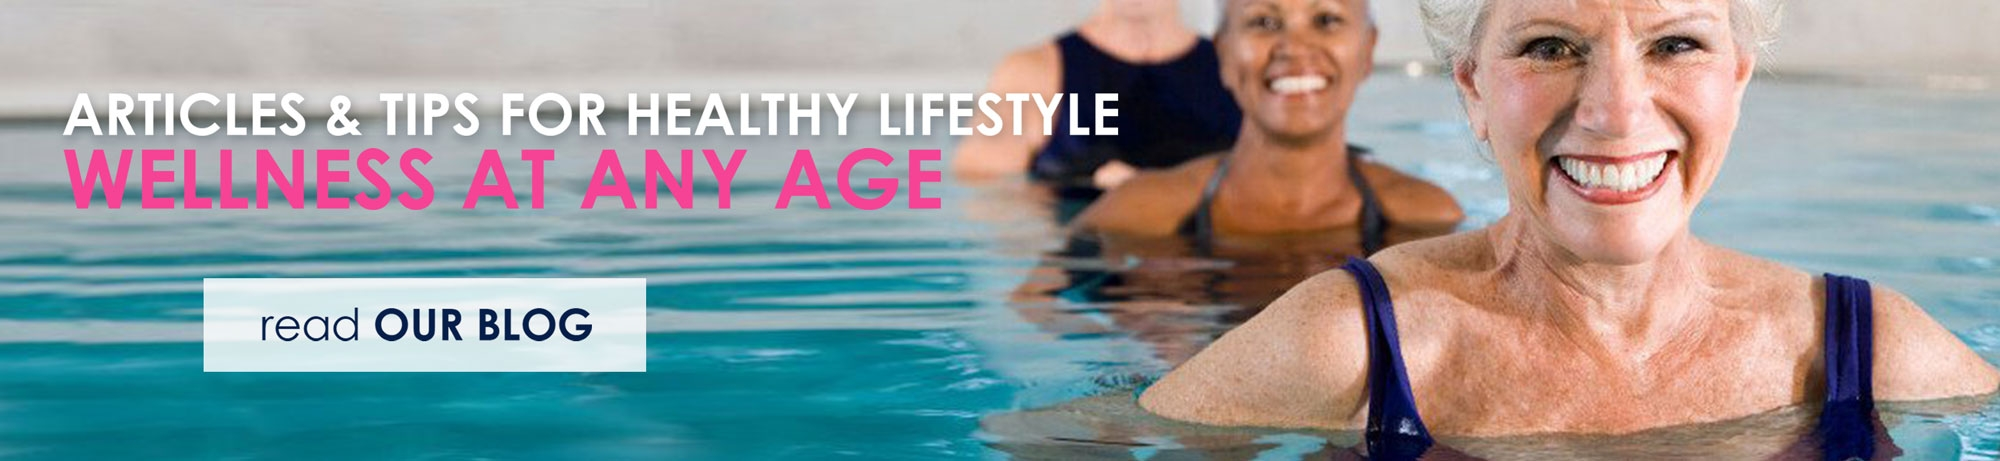 Articles & Tips for Healthy Lifestyle - Wellness at Any Age with Water Exercise and SwimandAweat